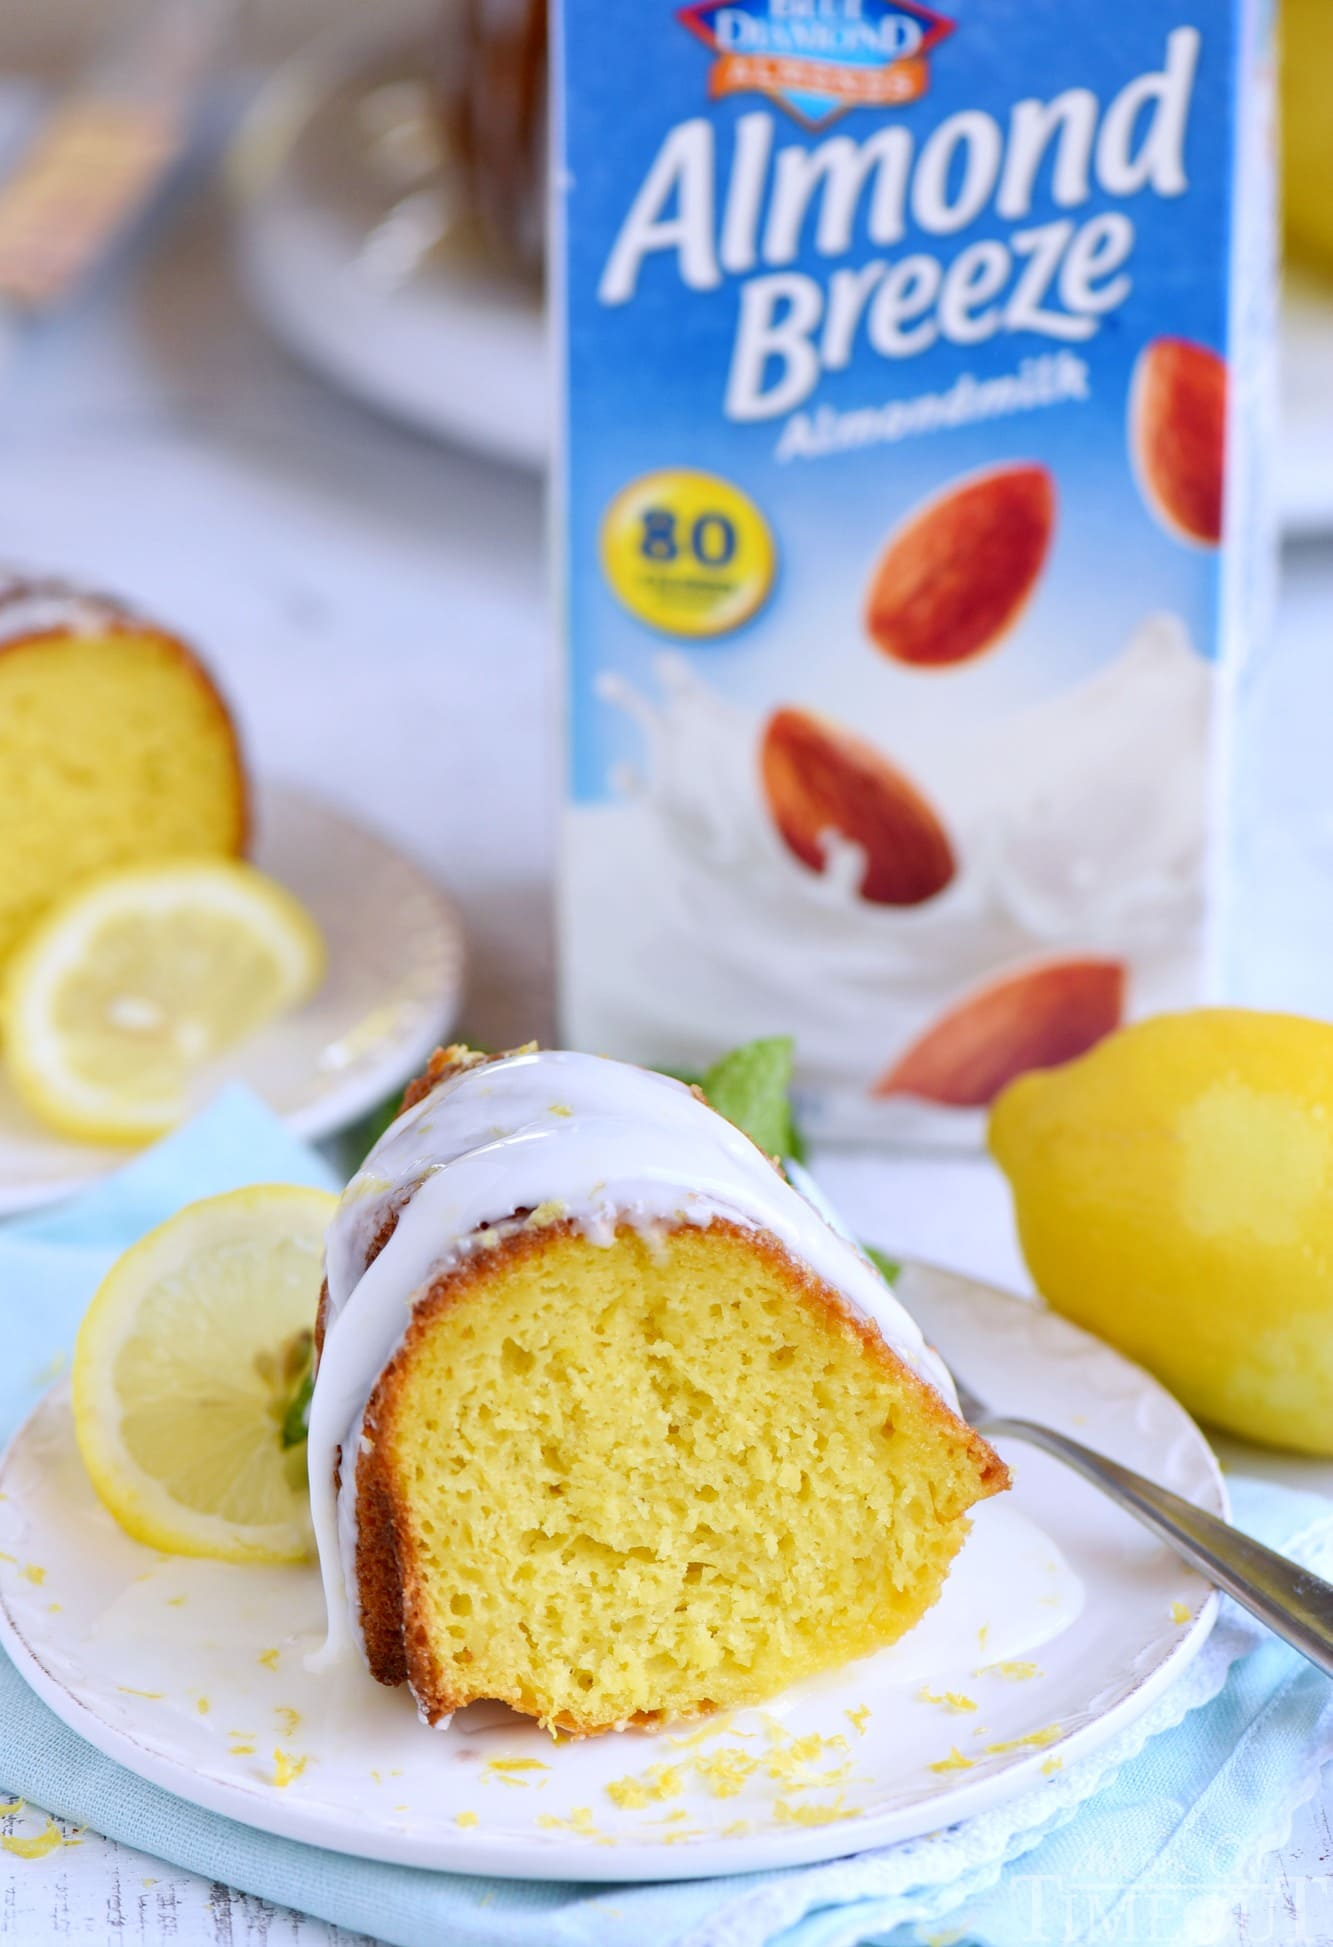 Looking for an easy lemon dessert recipe that is going to WOW your friends and family? This Easy Lemon Bundt Cake is the answer! A breeze to make and loaded with bright lemon flavor, this easy cake recipe is also figure-friendly which makes it perfect for summer! // Mom On Timeout